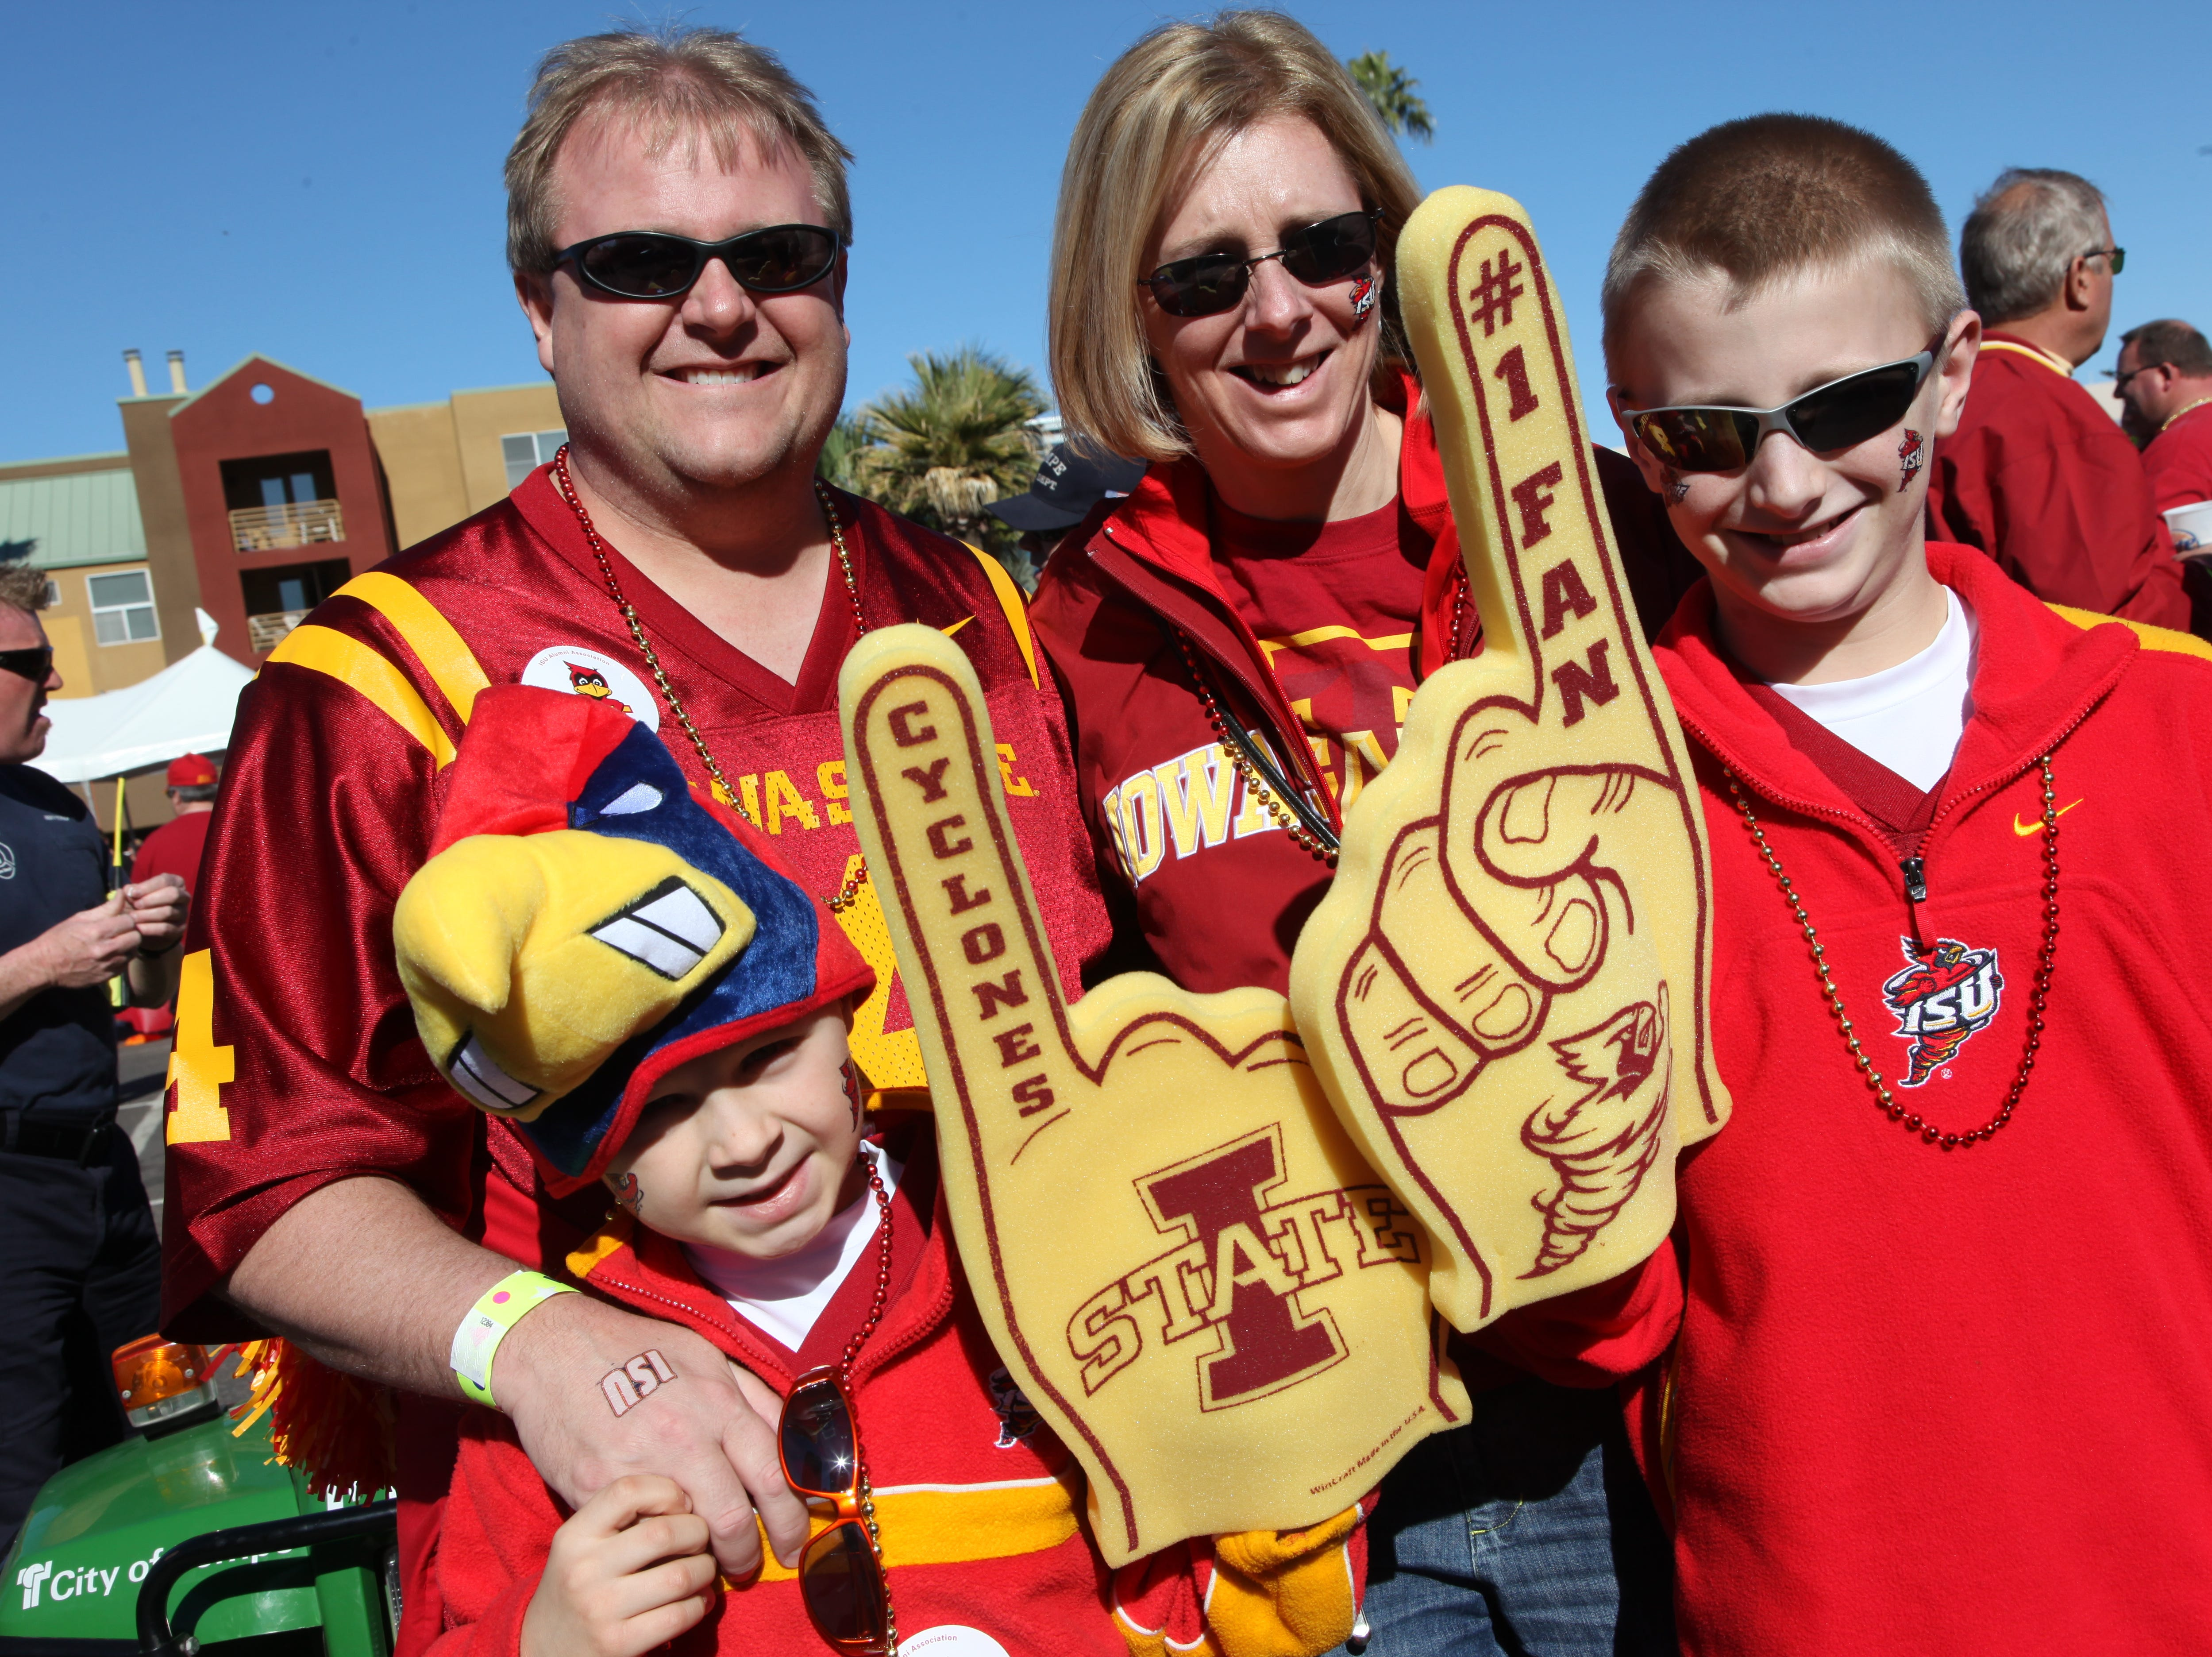 Crew family, Steve, Melissa, Devin, 8, and Skyler, 11, of Urbandale, were ready to cheer on the Cyclones. Steve has been an ISU fan since he was little. S0101ISUBowl -Iowa State University played Minnesota in the Insight Bowl in Tempe, Arizona, Thursday, December 31, 2009 at Sun Devil Stadium. (Andrea Melendez/The Register)